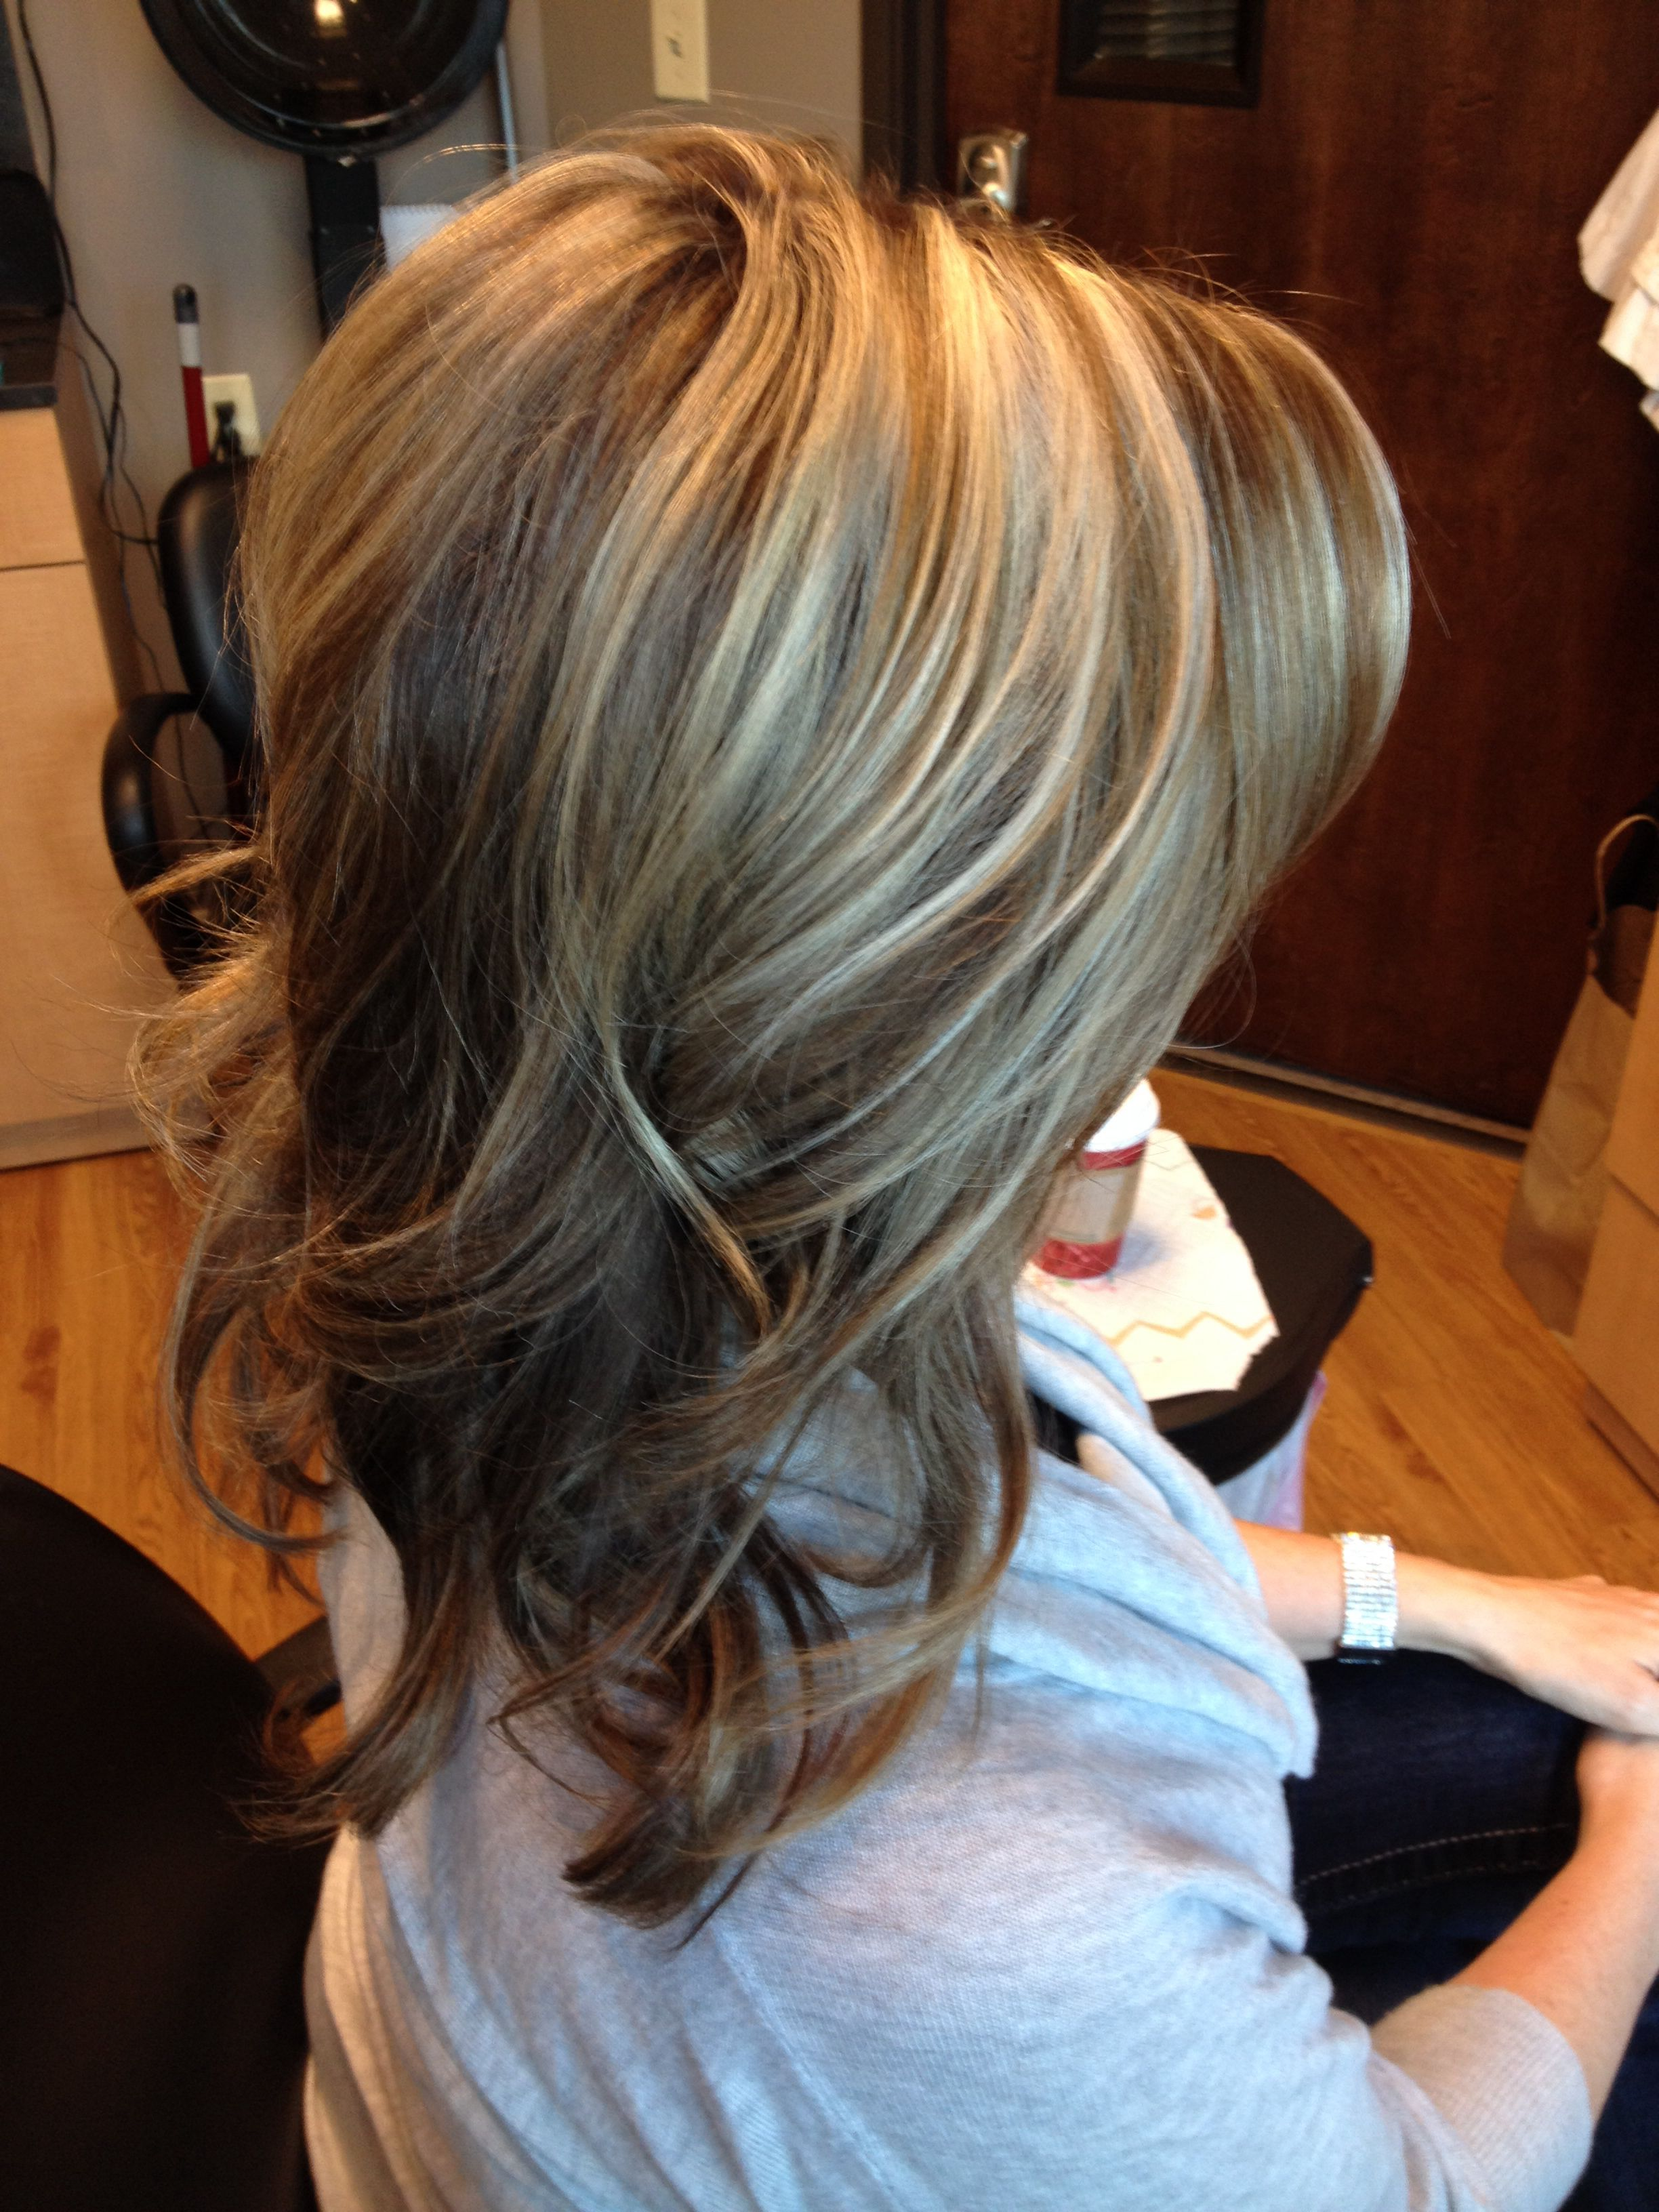 Light Brown Hair And White Blond Highlights With Curls Hair By